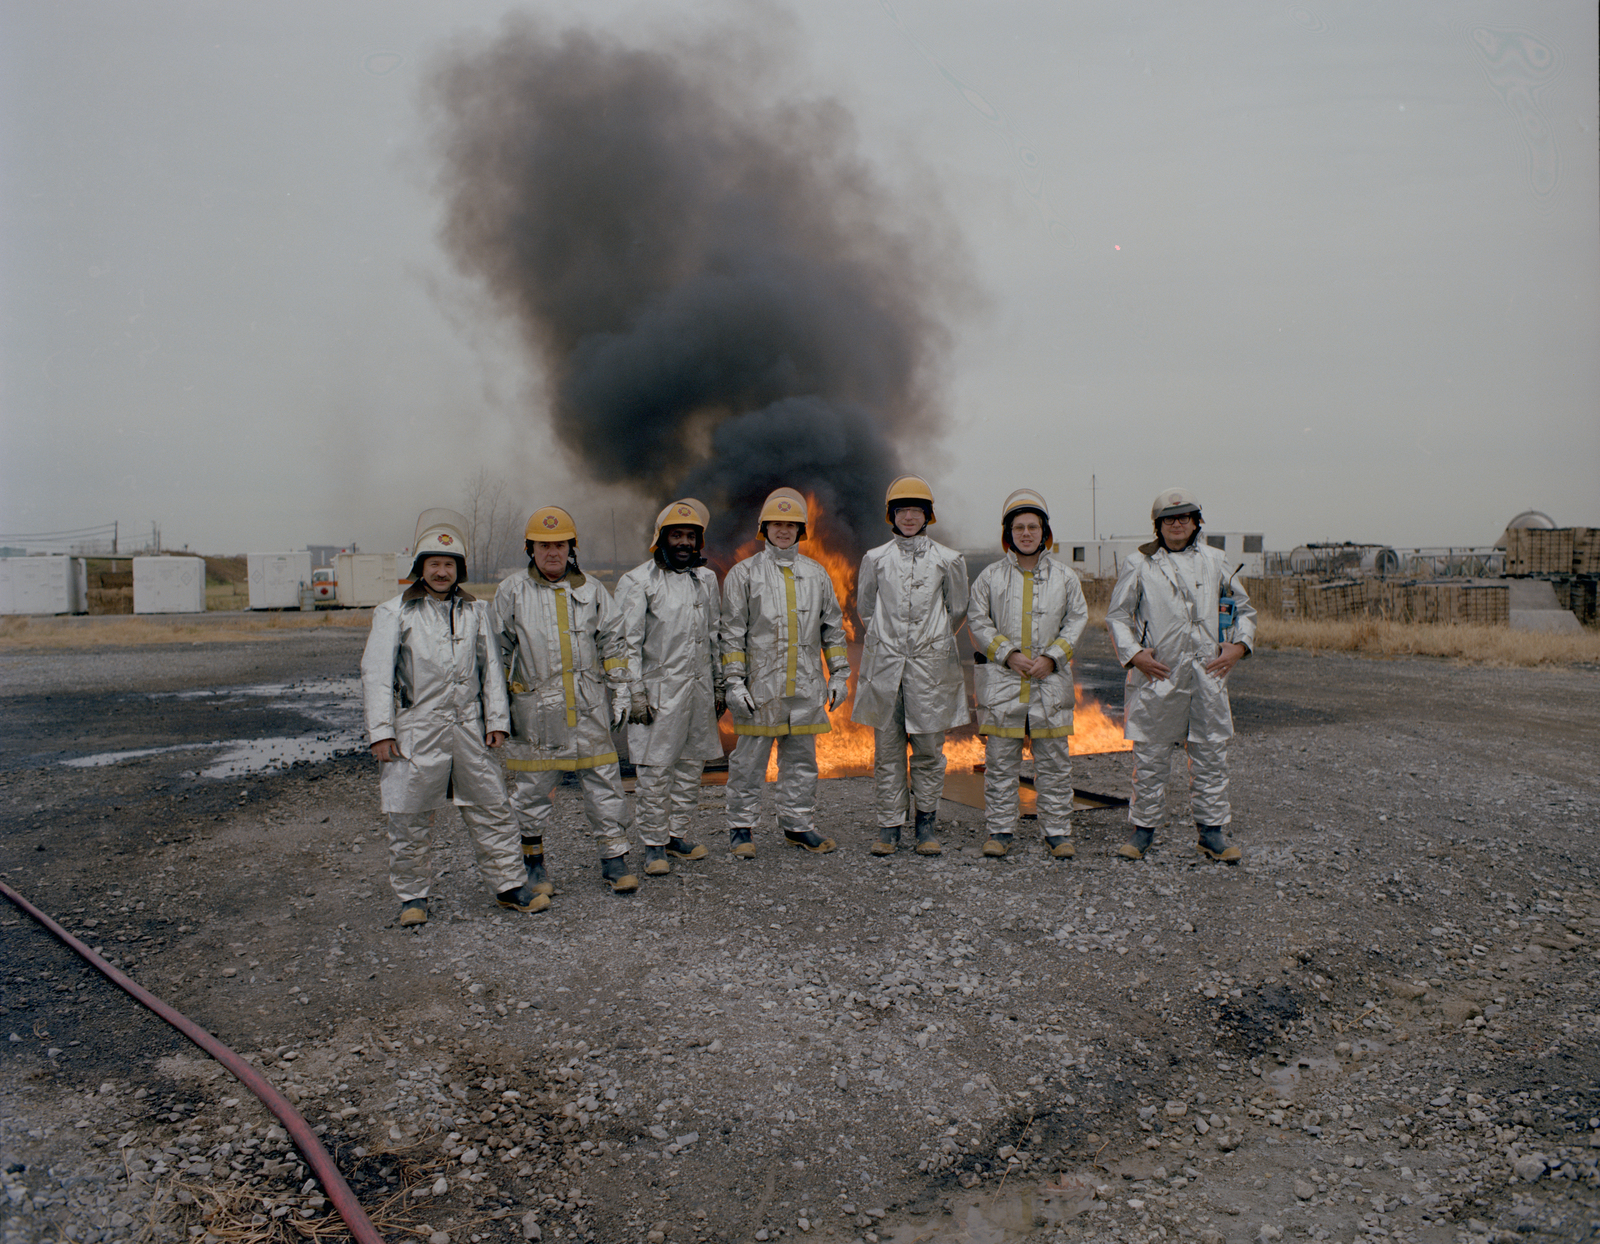 DRILL PIT FIRE TRAINING